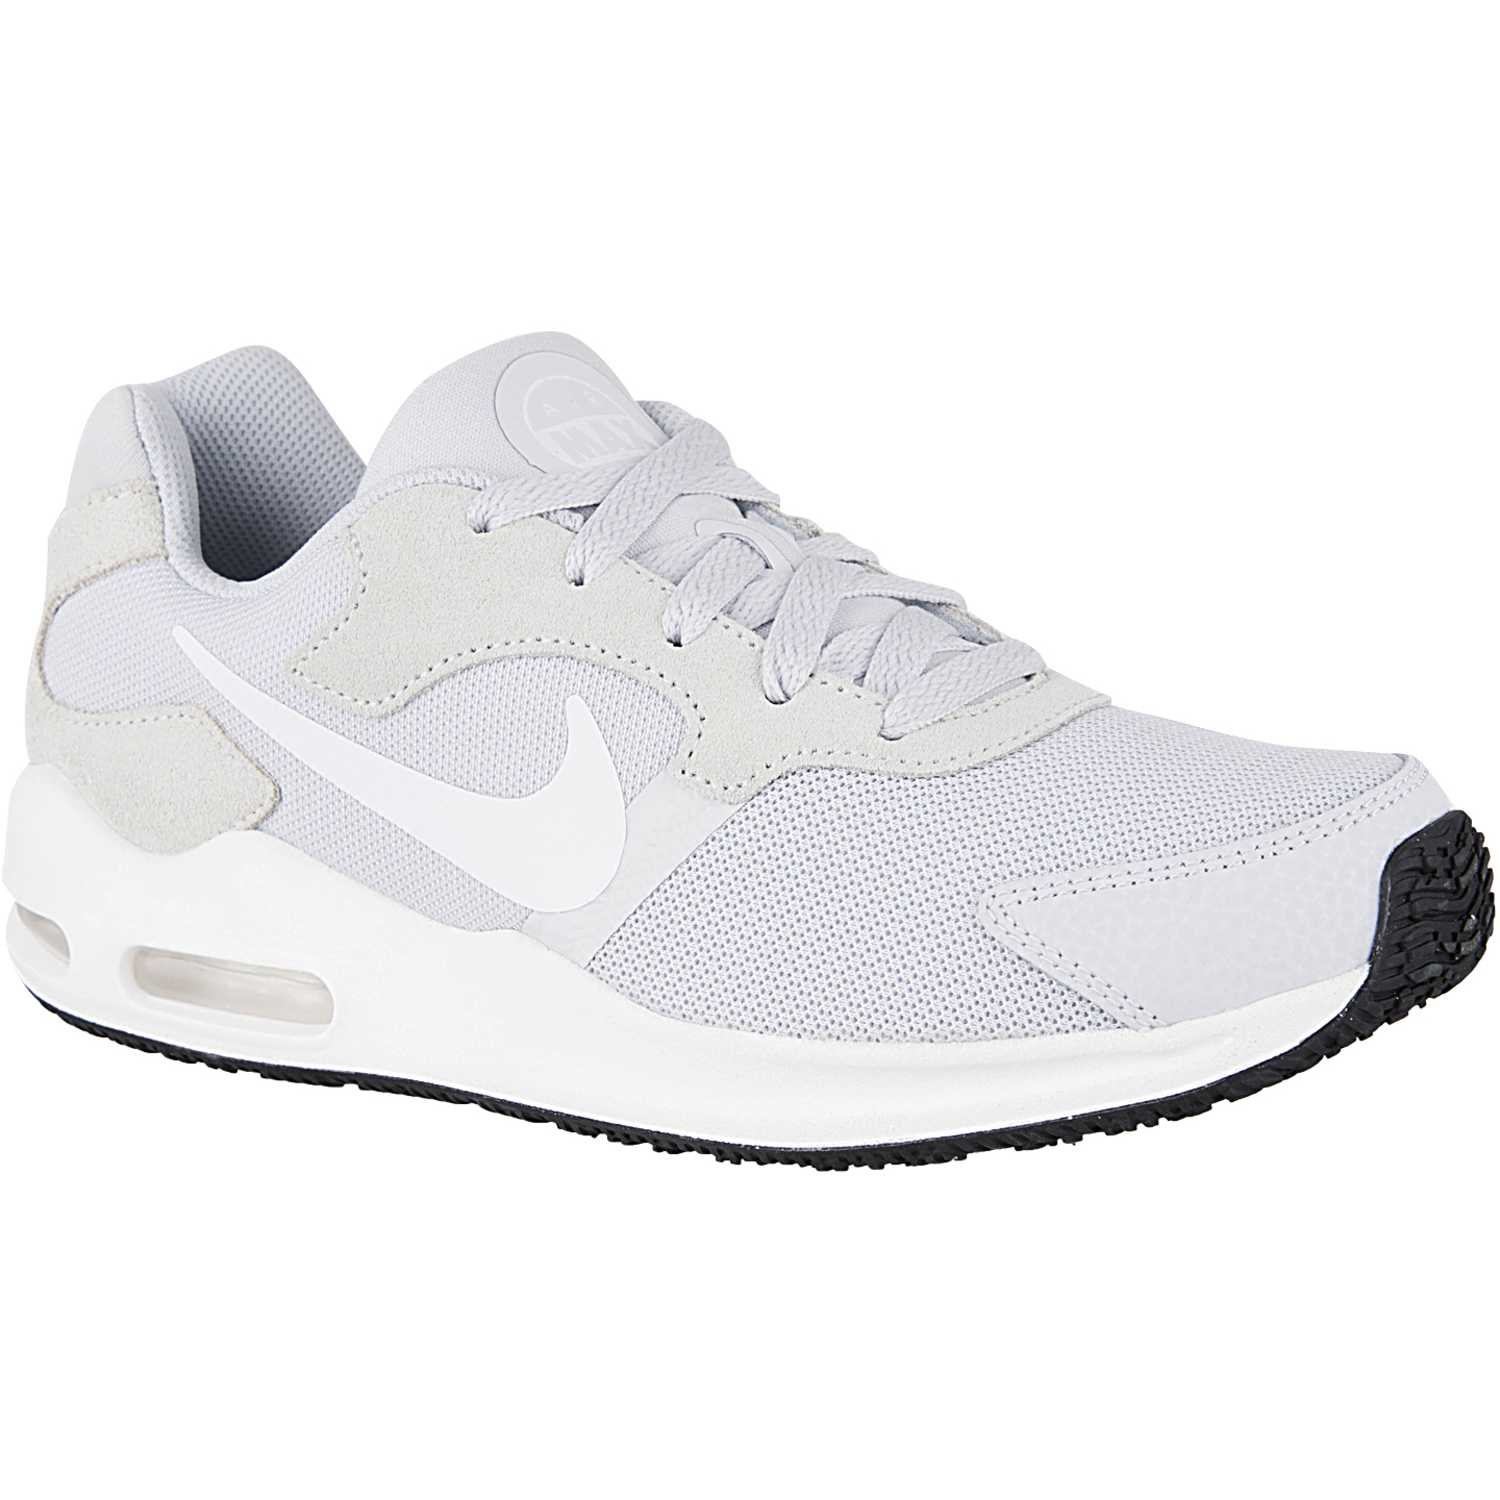 various colors 30157 533e2 Zapatilla de Mujer Nike Gris   blanco wmns air max guile